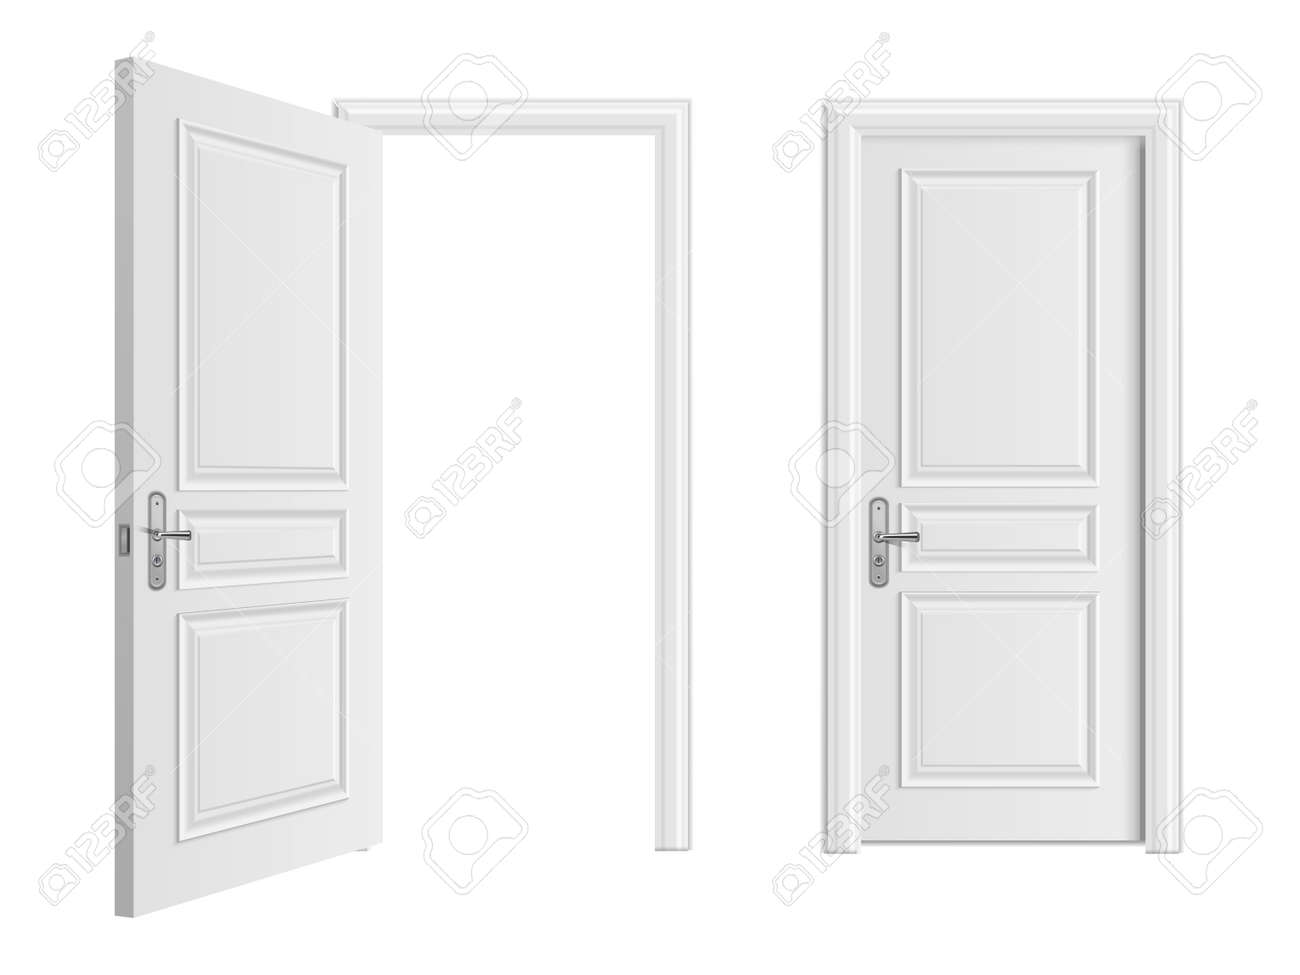 Open and closed white entrance realistic door isolated on white background. Door to house or room, enter doorway closed illustration - 168217411